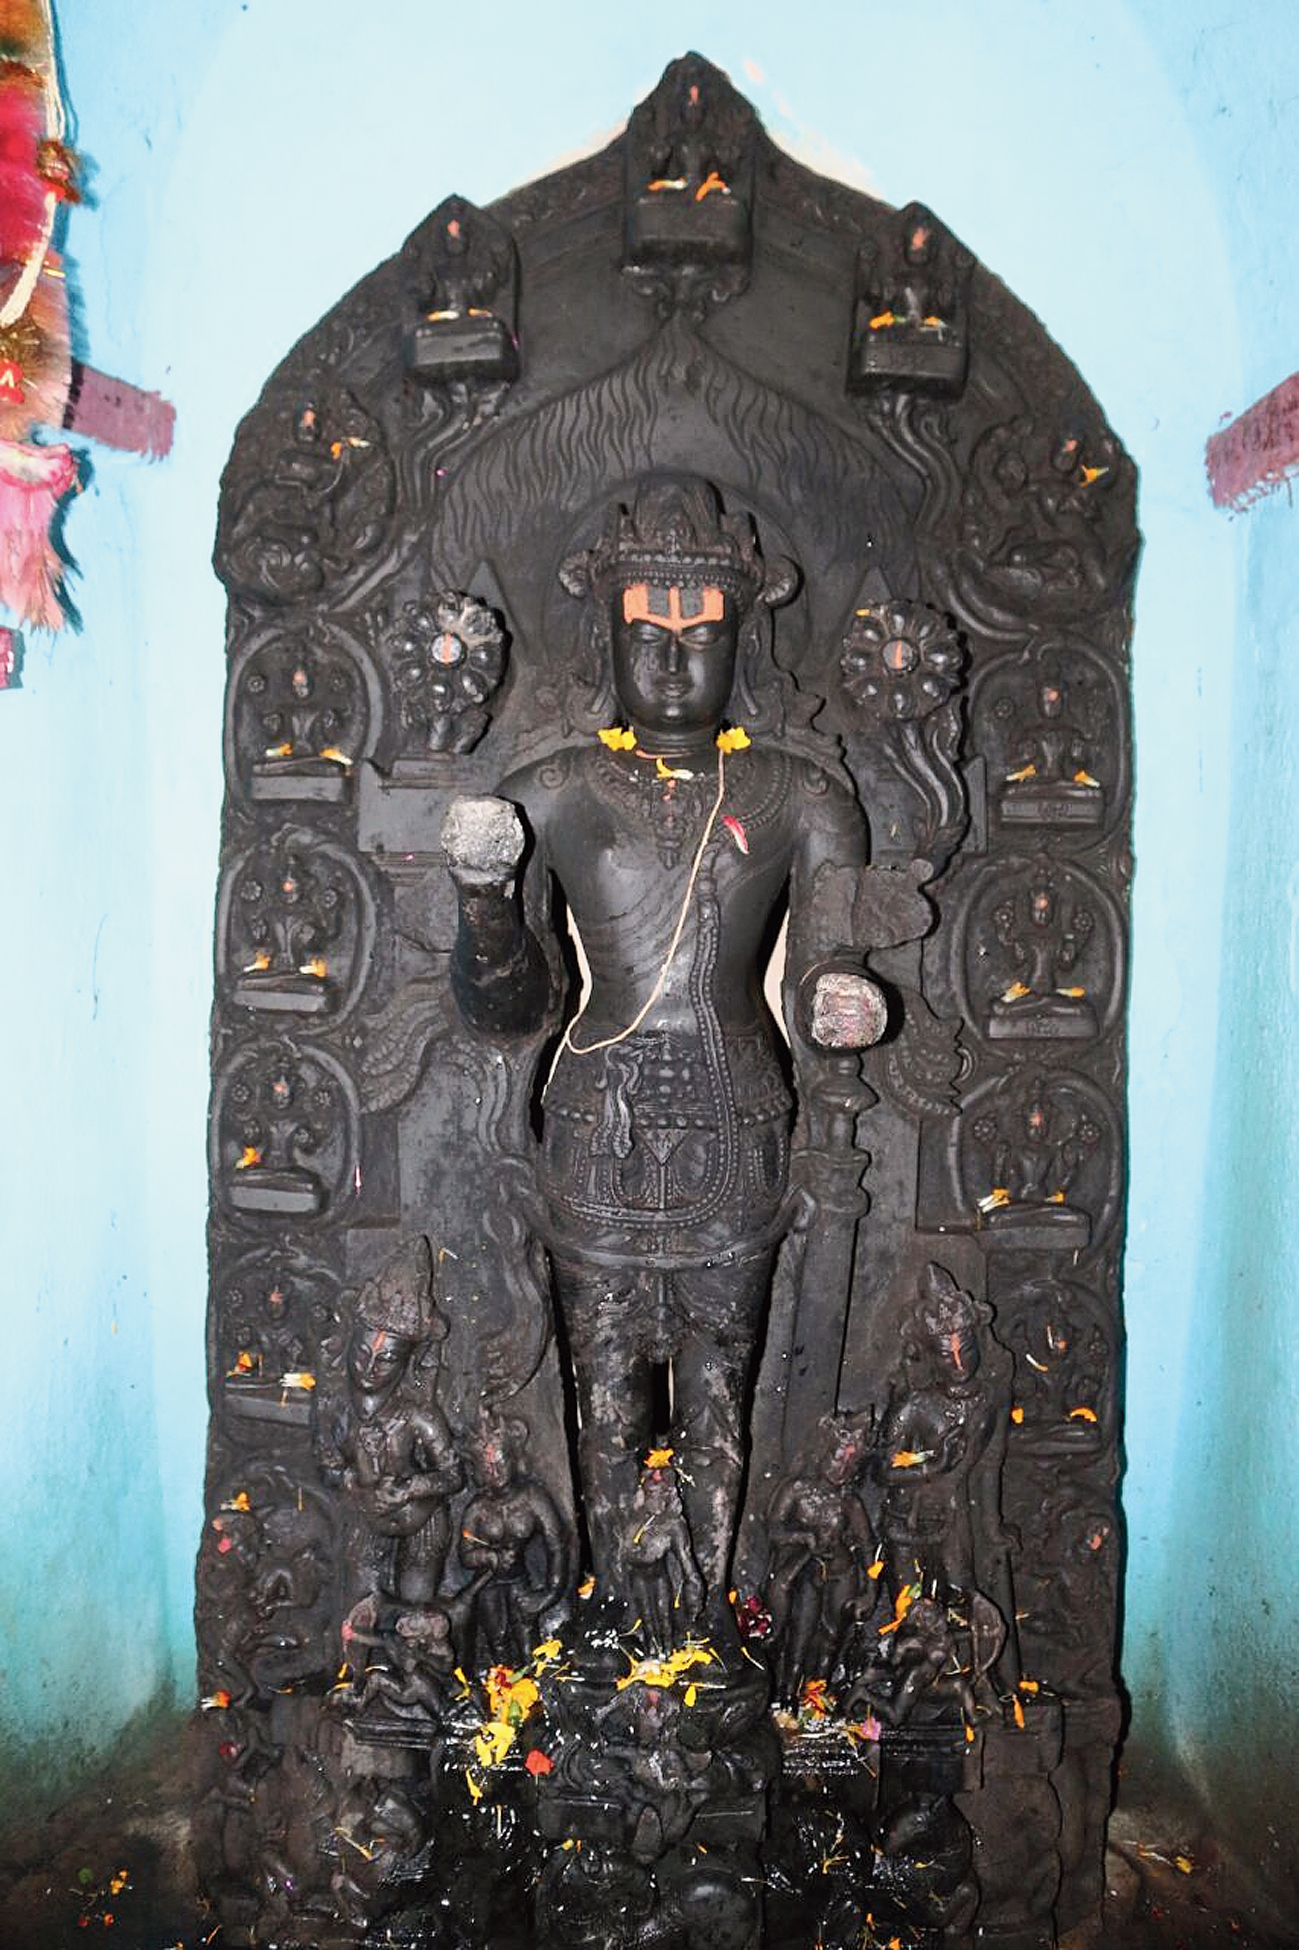 The Sun idol at Baruar temple in Madhubani. It also depicts Dwadash Aditya or the 12 forms of the Sun God.